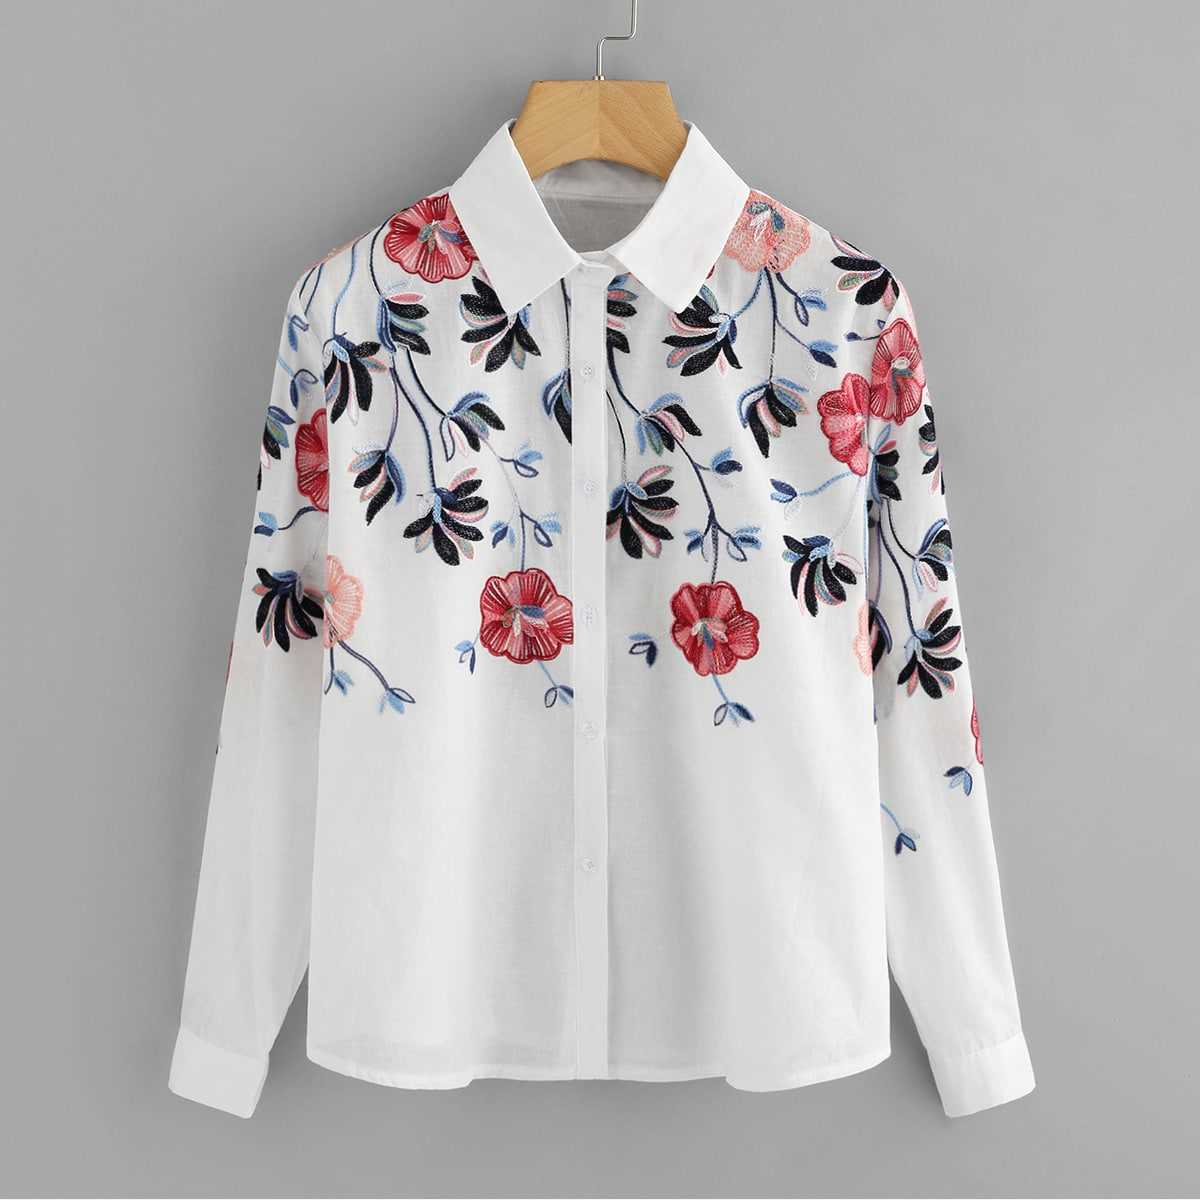 Floral Embroidery Button Front Blouse in White by ROMWE on GOOFASH